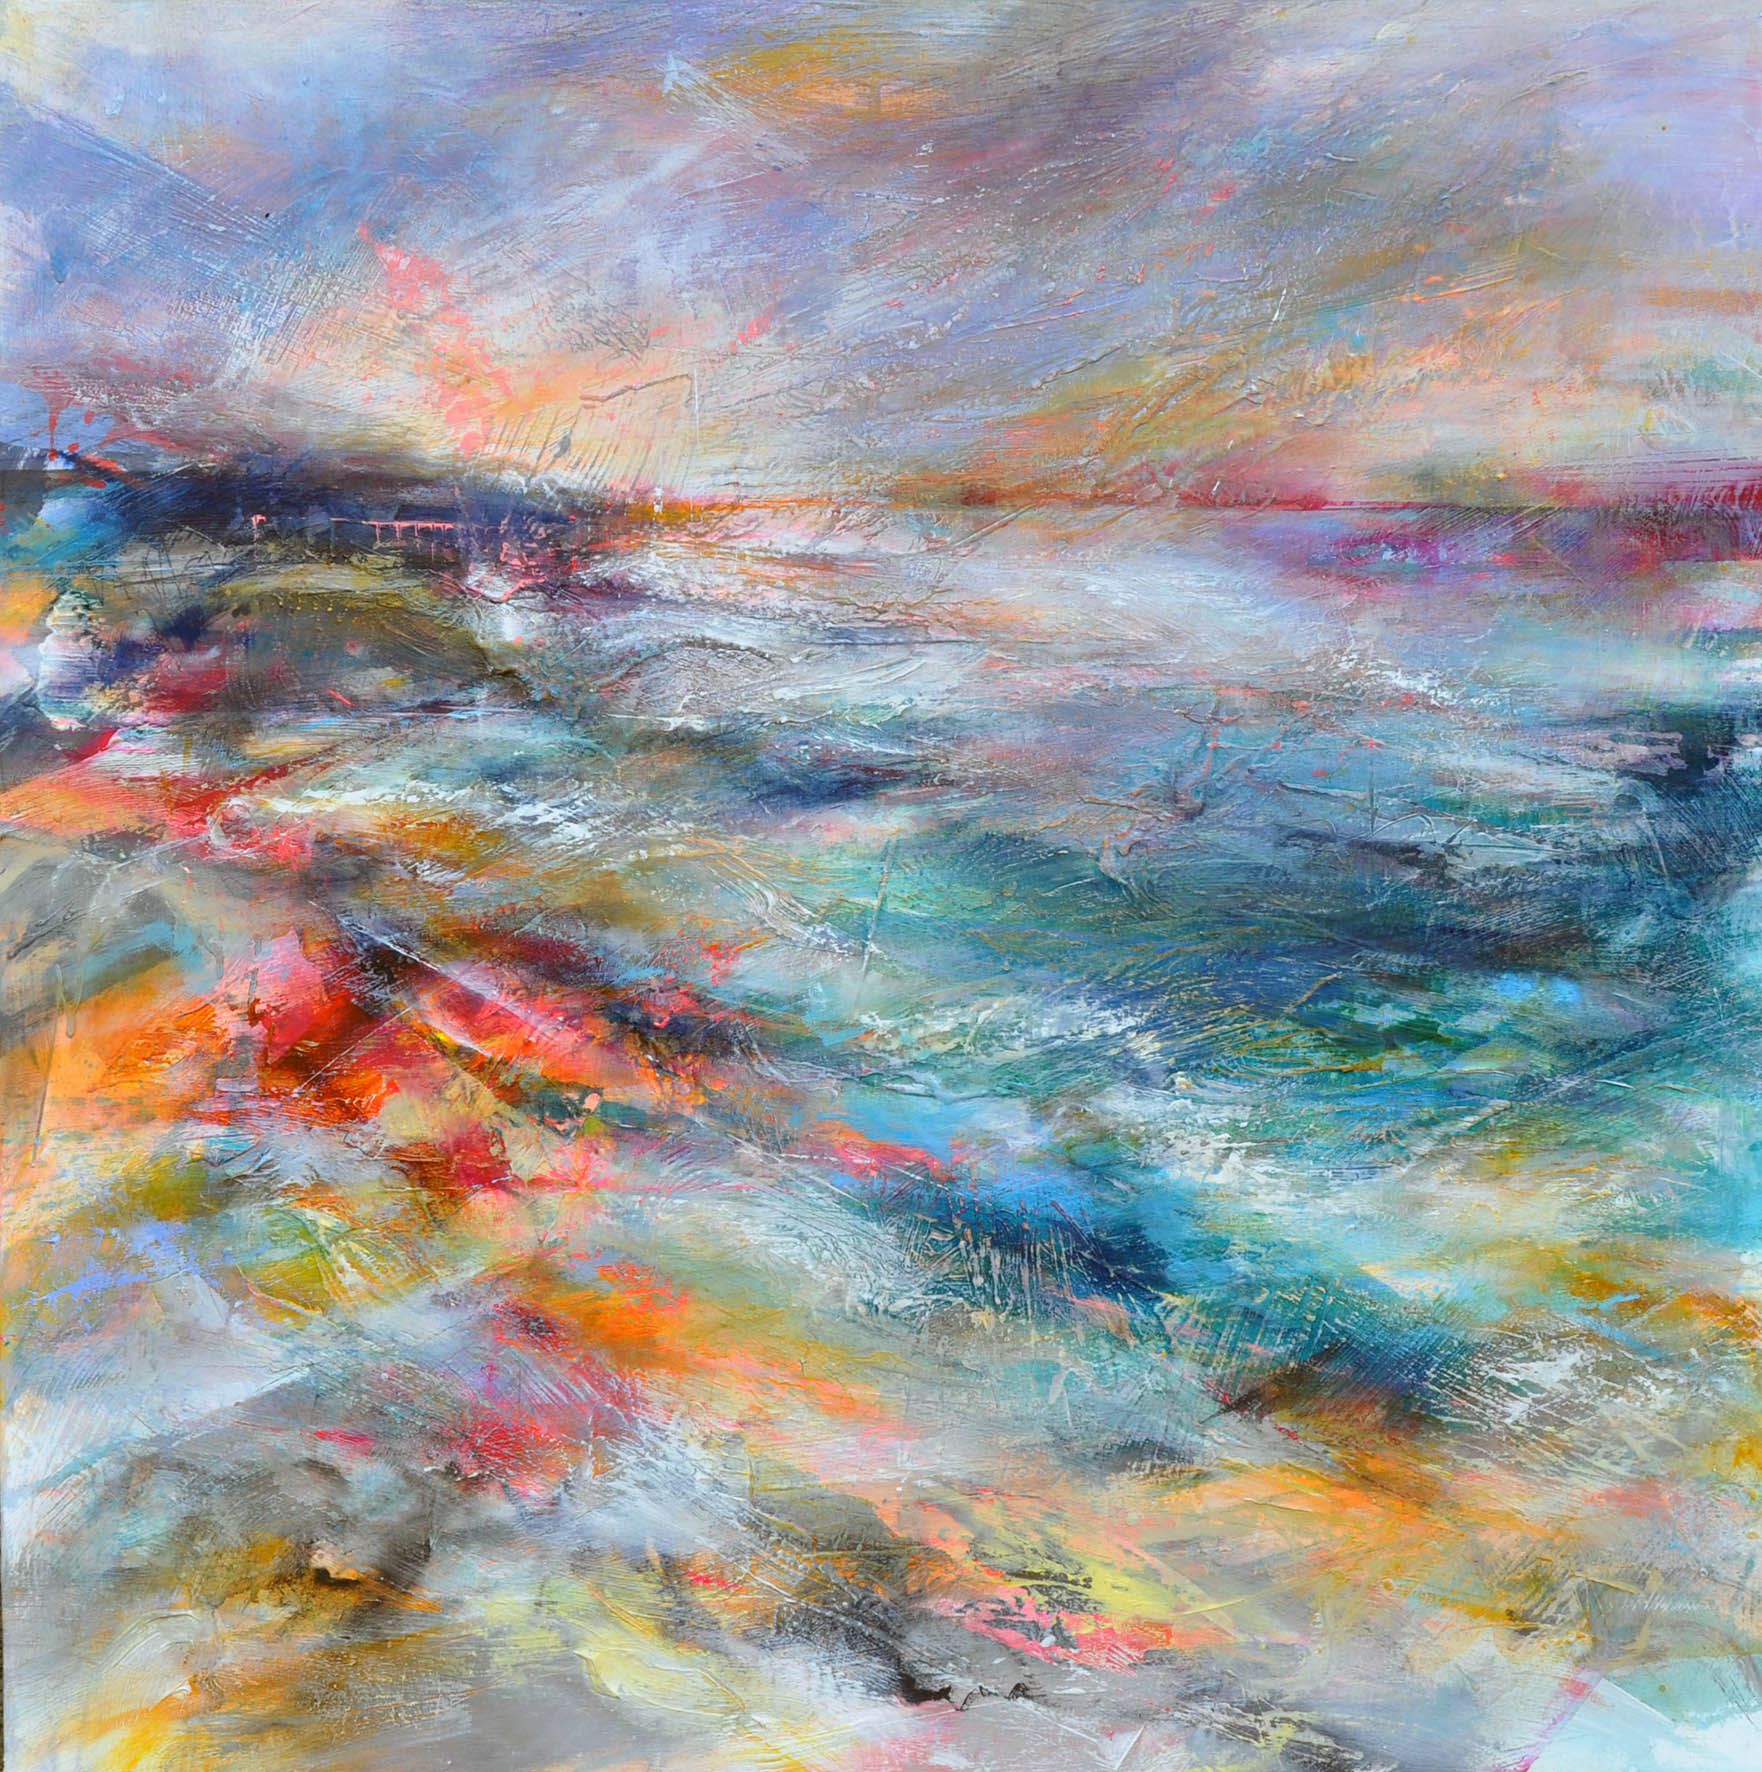 """<span class=""""link fancybox-details-link""""><a href=""""/artists/90-freya-horsley/works/6256-freya-horsley-looking-for-time-2019/"""">View Detail Page</a></span><div class=""""artist""""><strong>Freya Horsley</strong></div> <div class=""""title""""><em>Looking for Time</em>, 2019</div> <div class=""""signed_and_dated"""">Signed</div> <div class=""""medium"""">Mixed media on canvas</div> <div class=""""dimensions"""">100 x 100 cm</div><div class=""""copyright_line"""">Own Art £200 x 10 months, 0% APR</div>"""